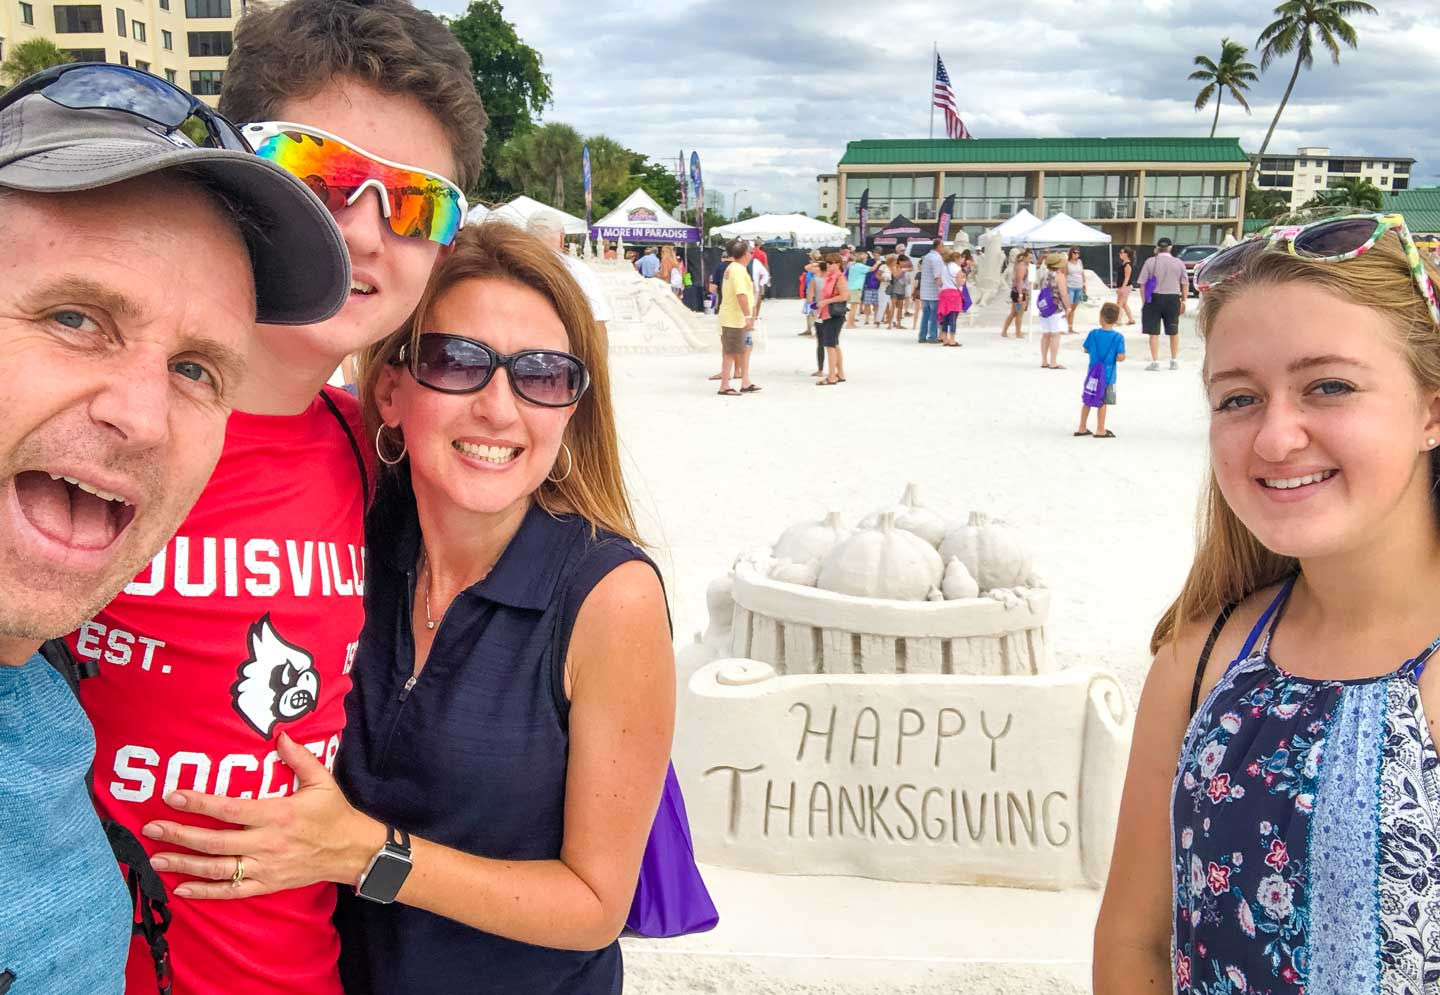 """Family photo of us near a sand sculpture that says """"Happy Thanksgiving""""."""